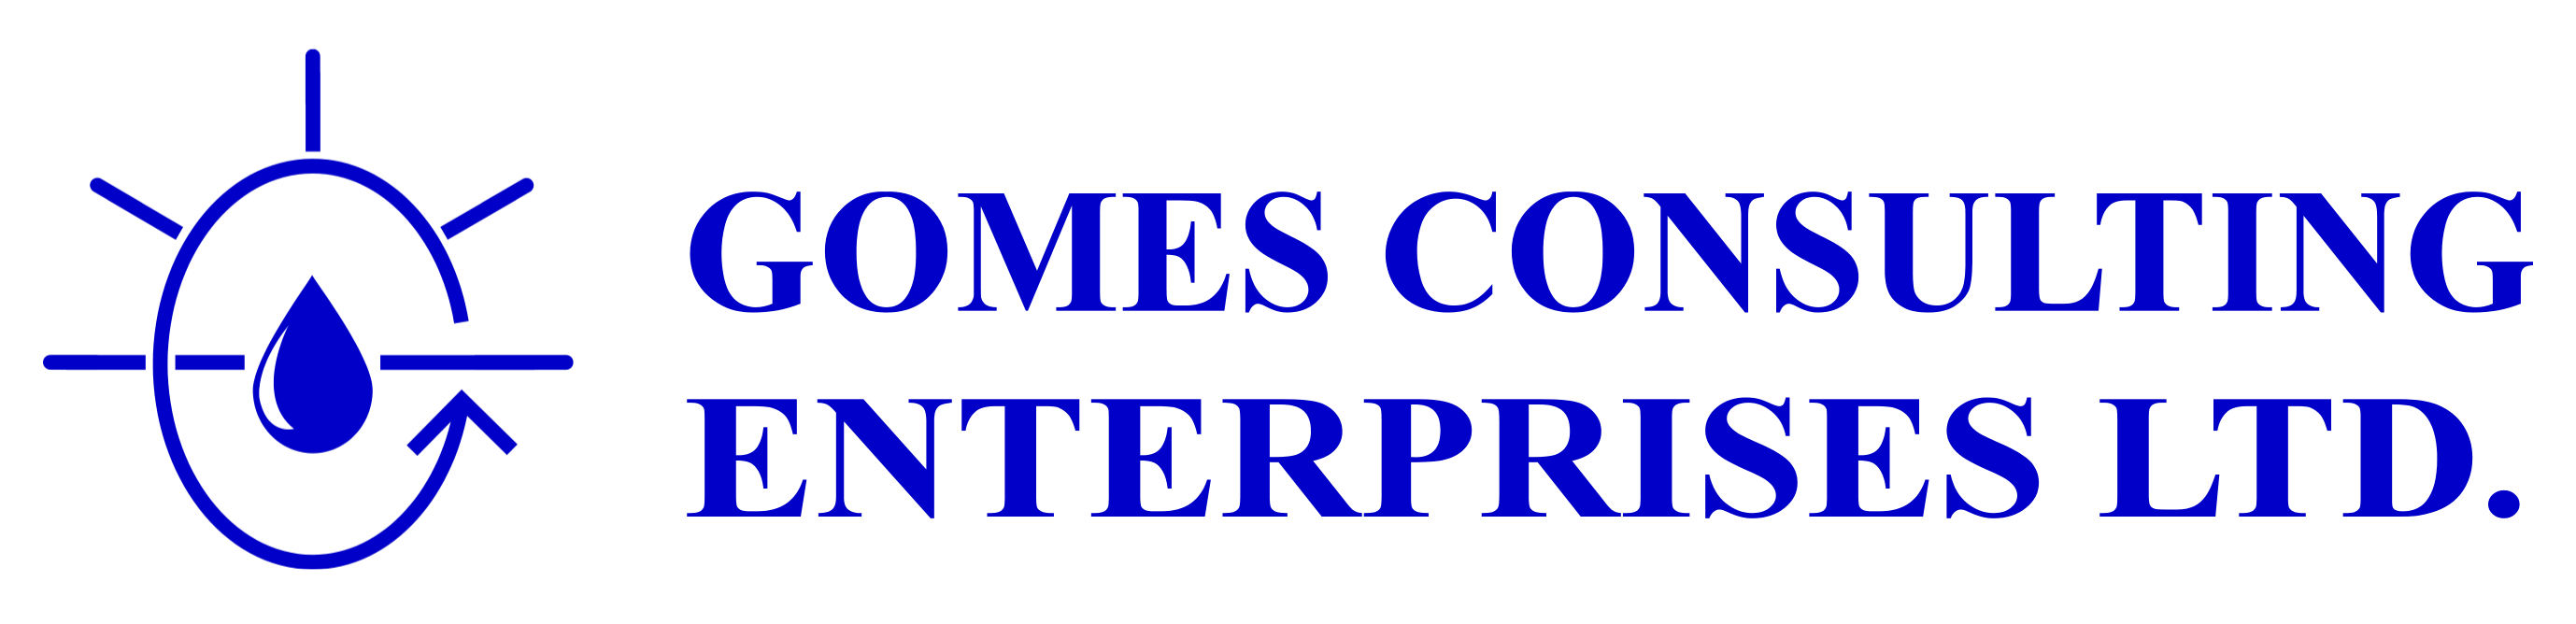 Gomes Consulting Enterprises Limited